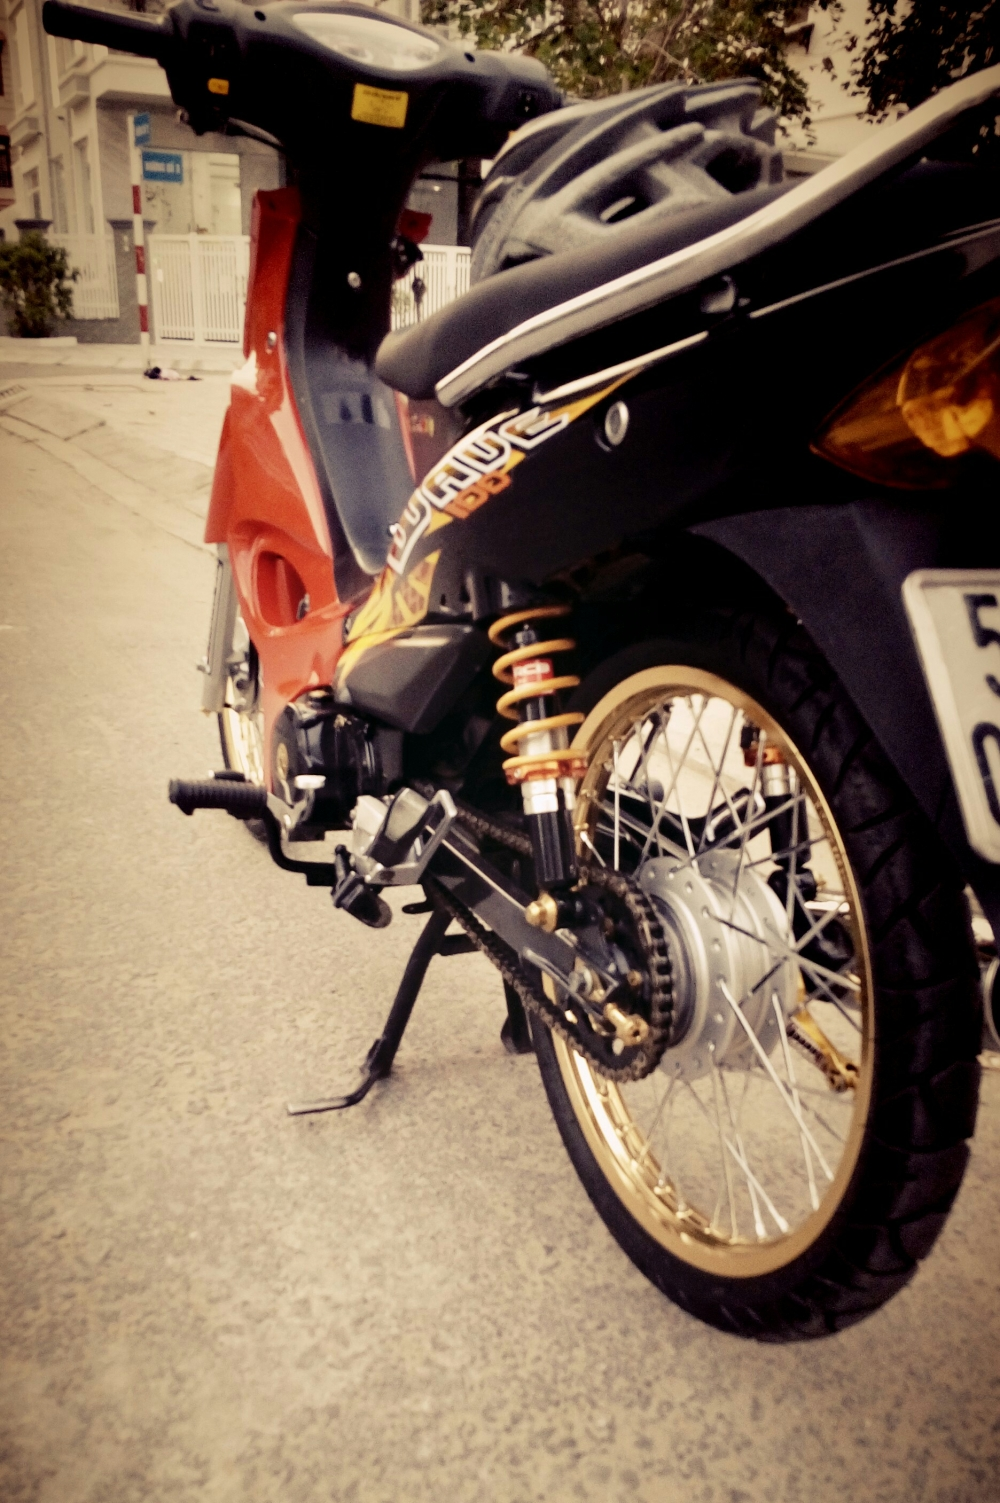 Elegent 50 cc don wave nhe - 3